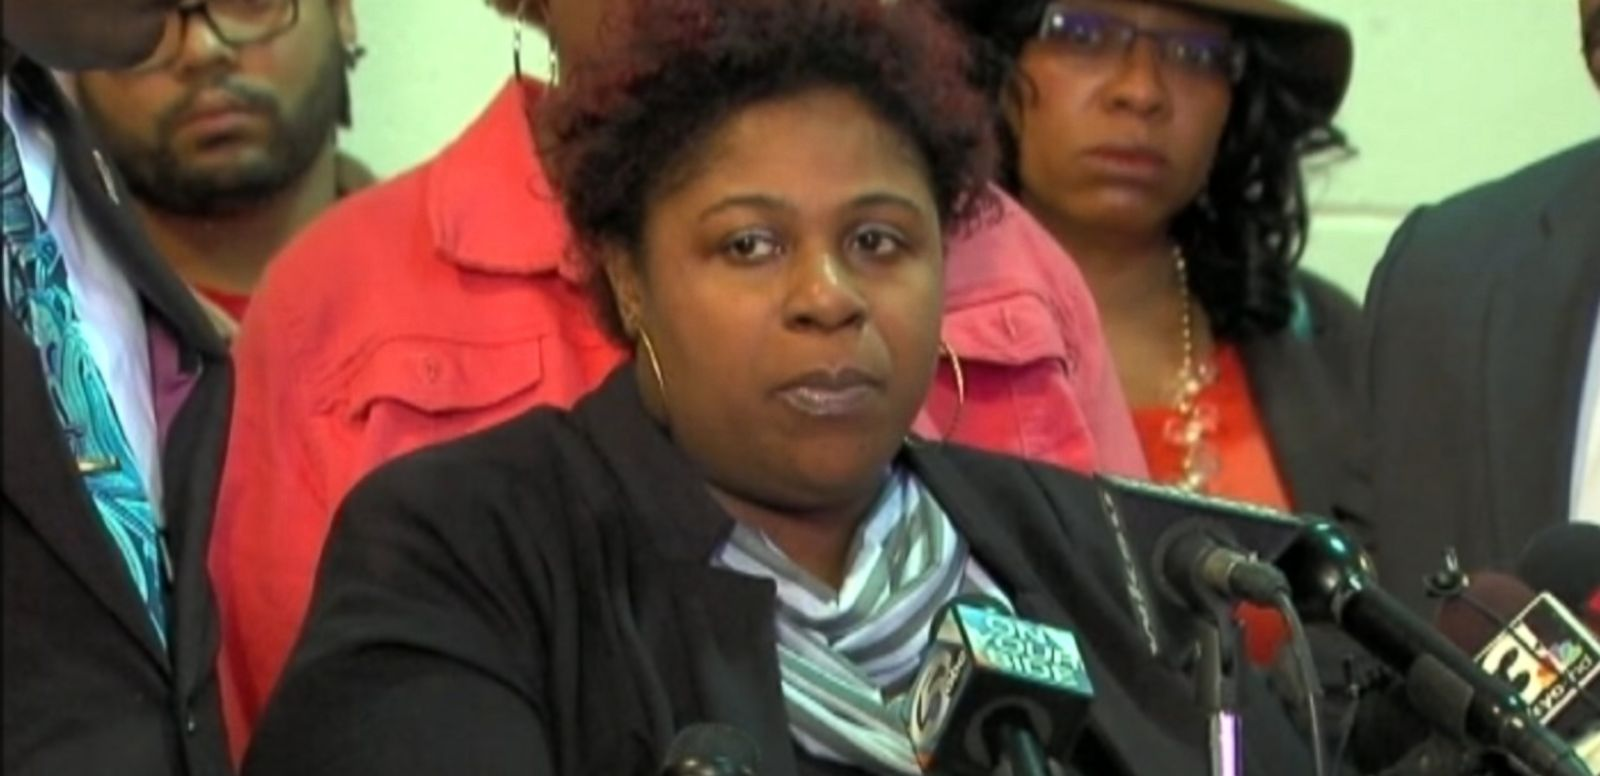 VIDEO: Samaria Rice say she hasn't received an apology from the city of Cleveland for the shooting death of her son.